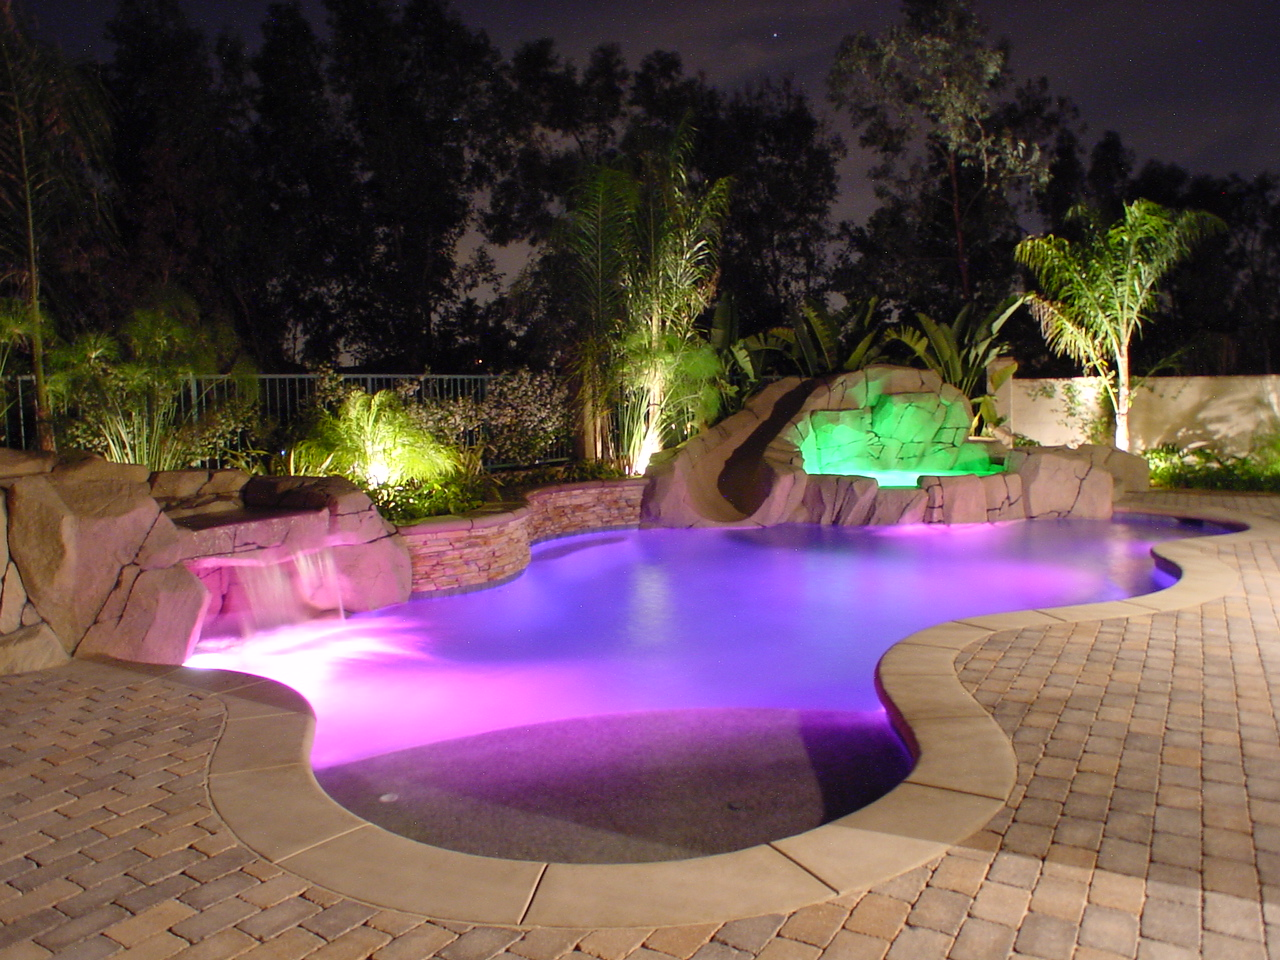 26 Pics Of Most Creative Amazing Swimming Pool Designs Mojly